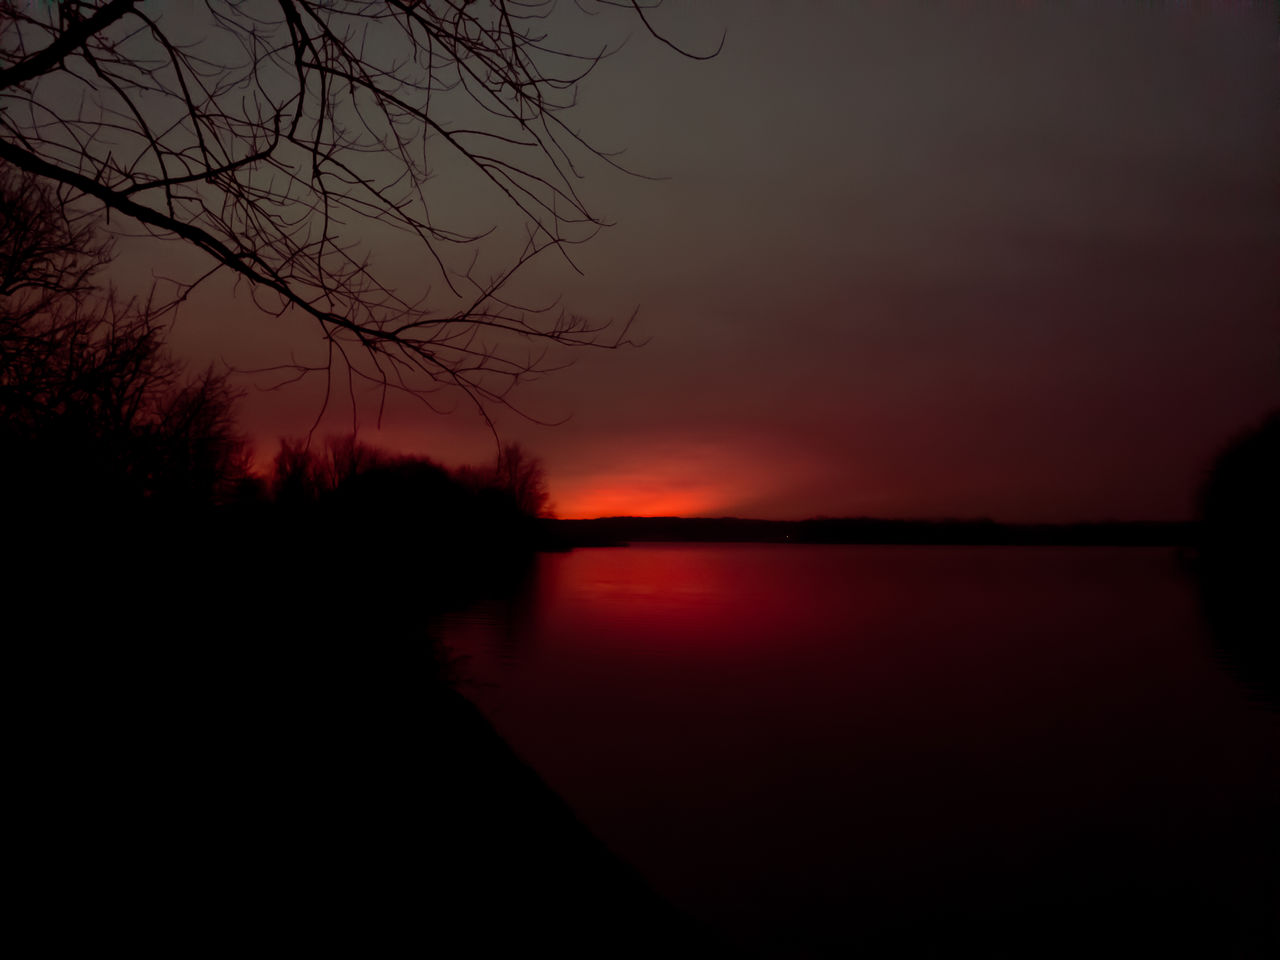 sky, sunset, silhouette, beauty in nature, tranquil scene, tranquility, scenics - nature, orange color, water, idyllic, cloud - sky, nature, tree, no people, reflection, non-urban scene, lake, plant, outdoors, romantic sky